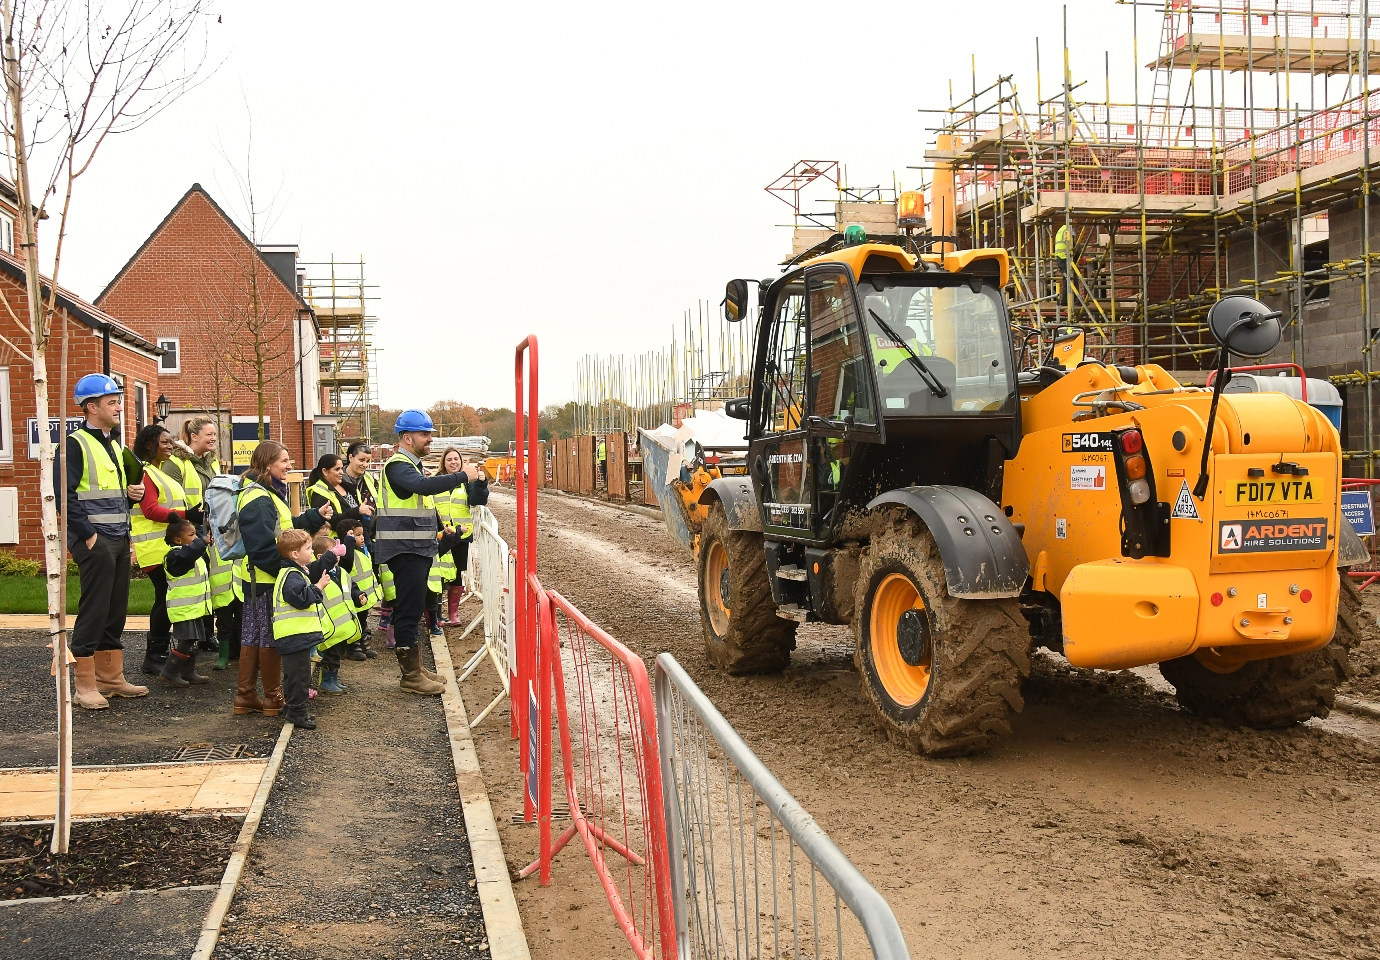 Children learn importance of site safety on tour of new development